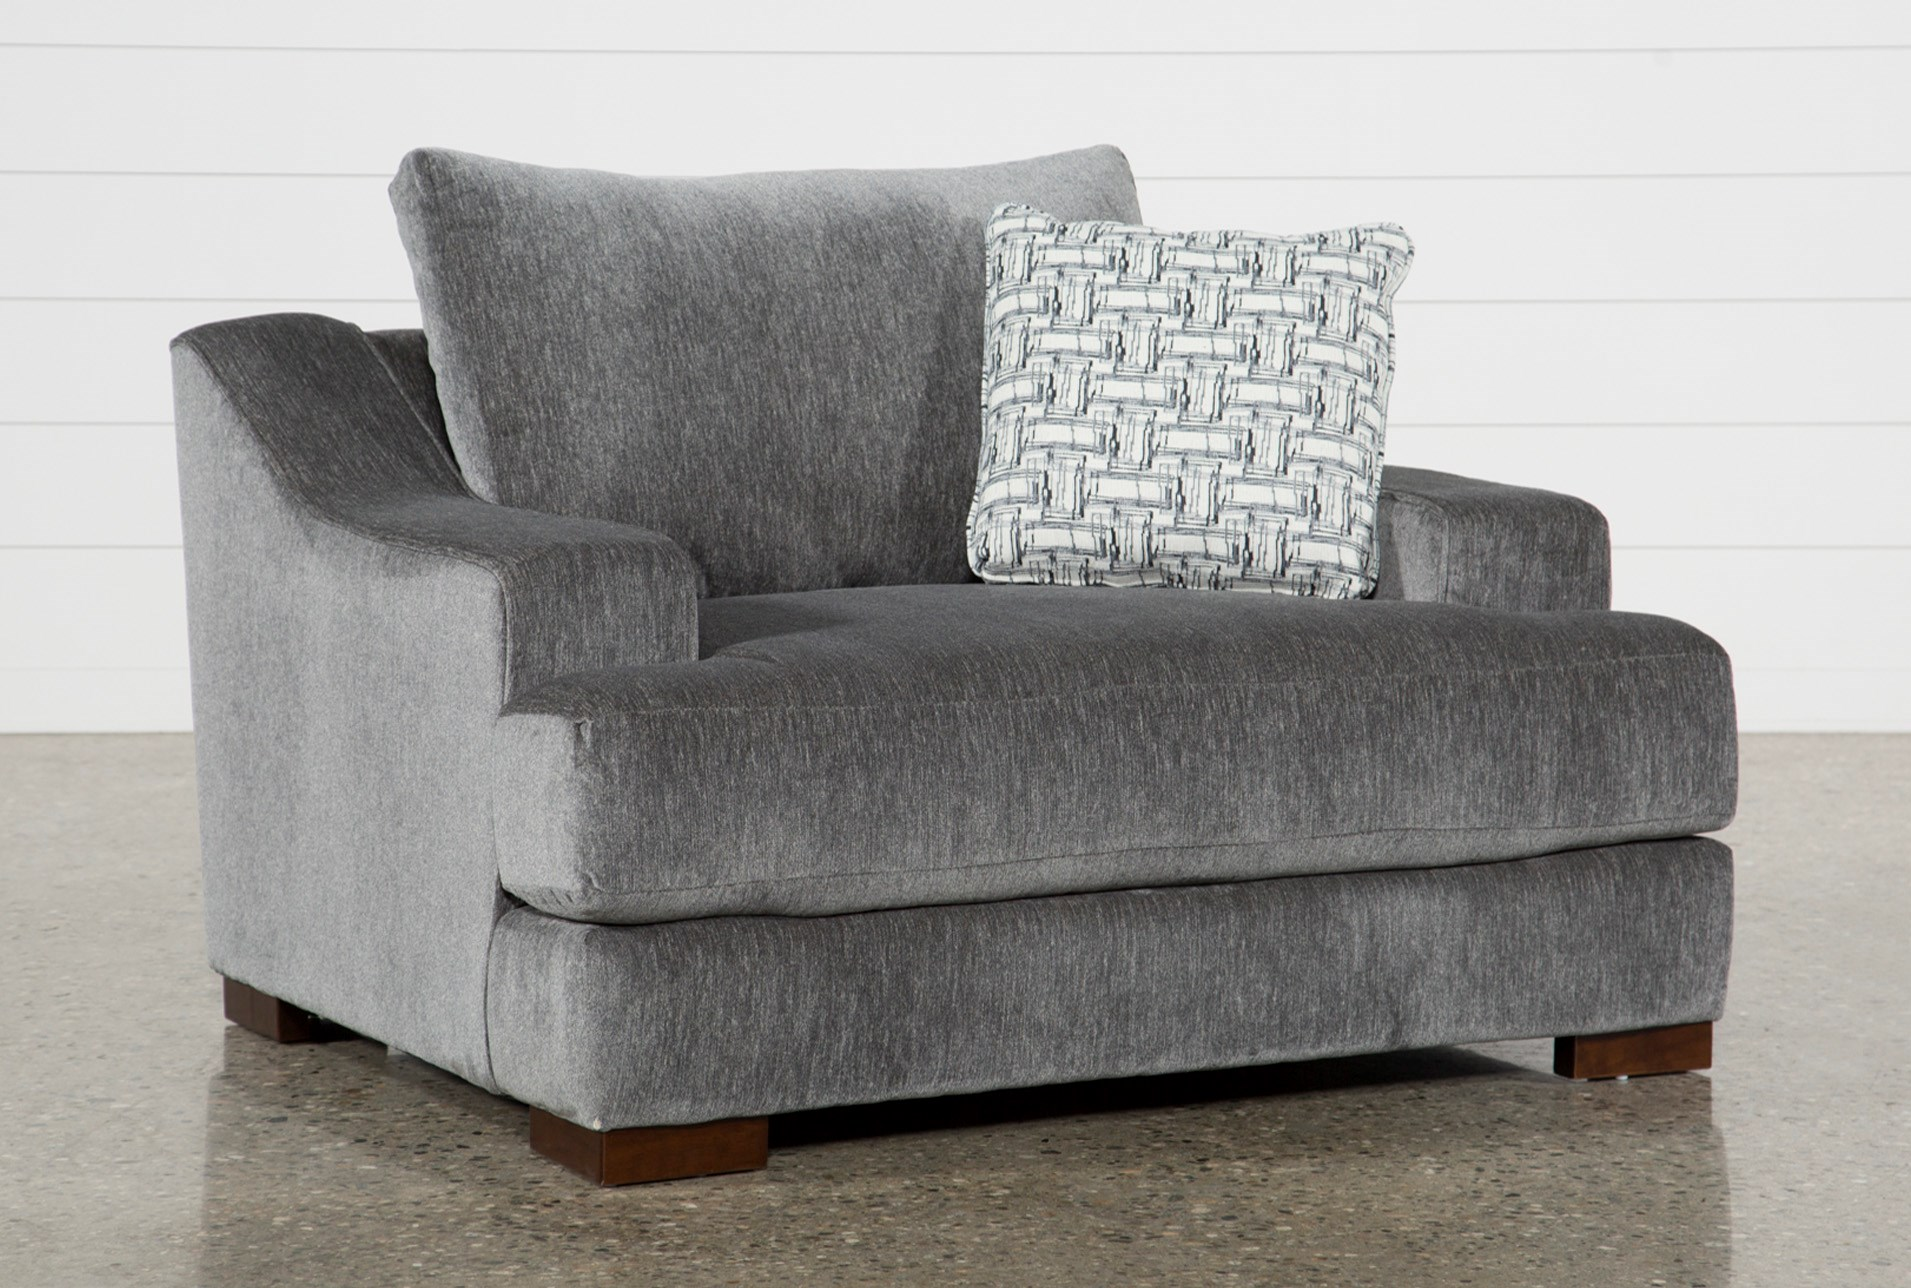 Maddox Oversized Chair Qty 1 Has Been Successfully Added To Your Cart